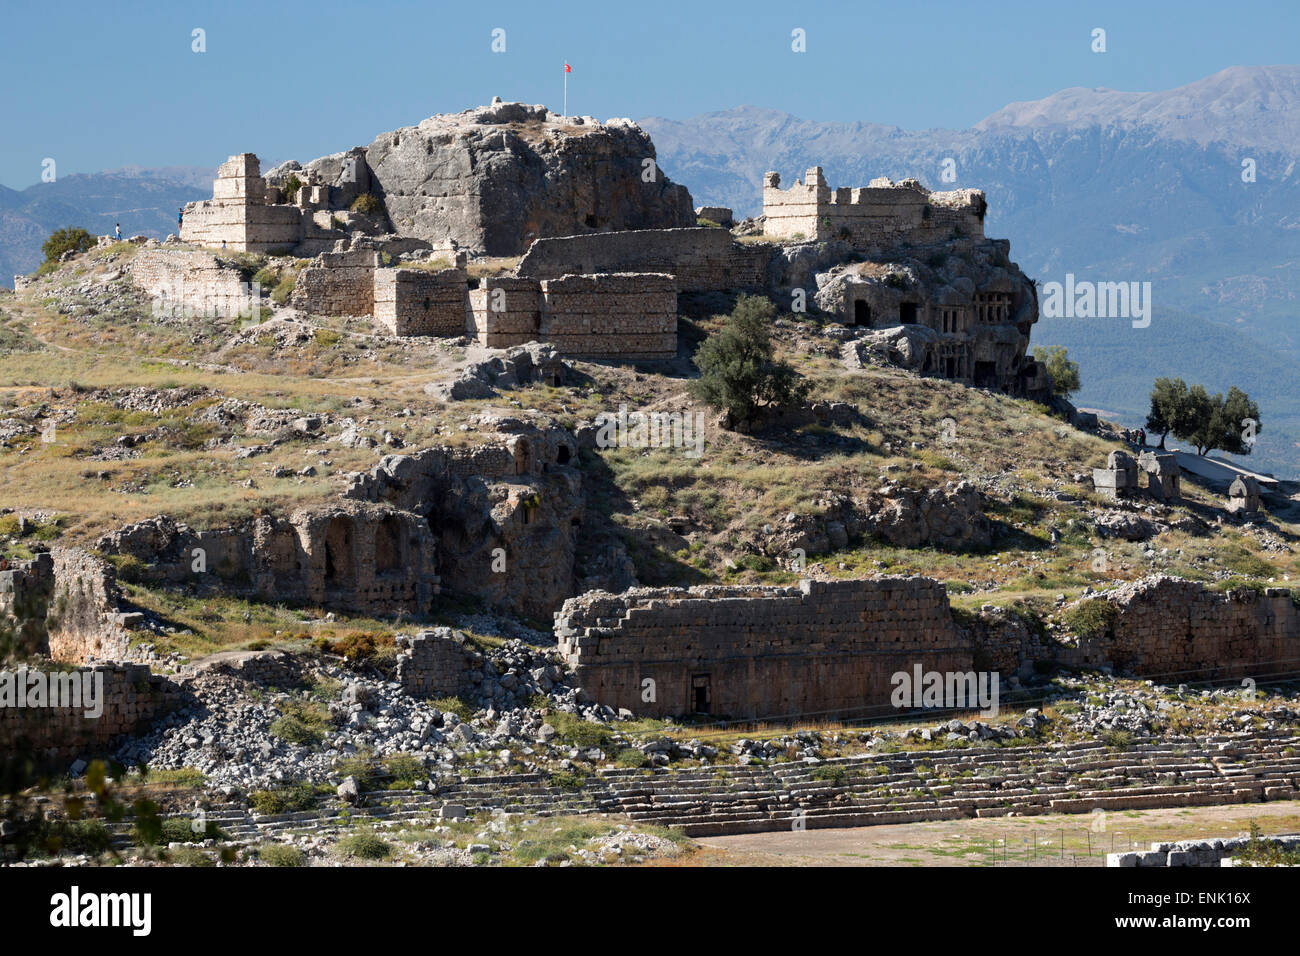 Ruined stadium and Acropolis, Tlos, Lycia, Antalya Province, Mediterranean Coast, Southwest Turkey, Anatolia, Turkey - Stock Image